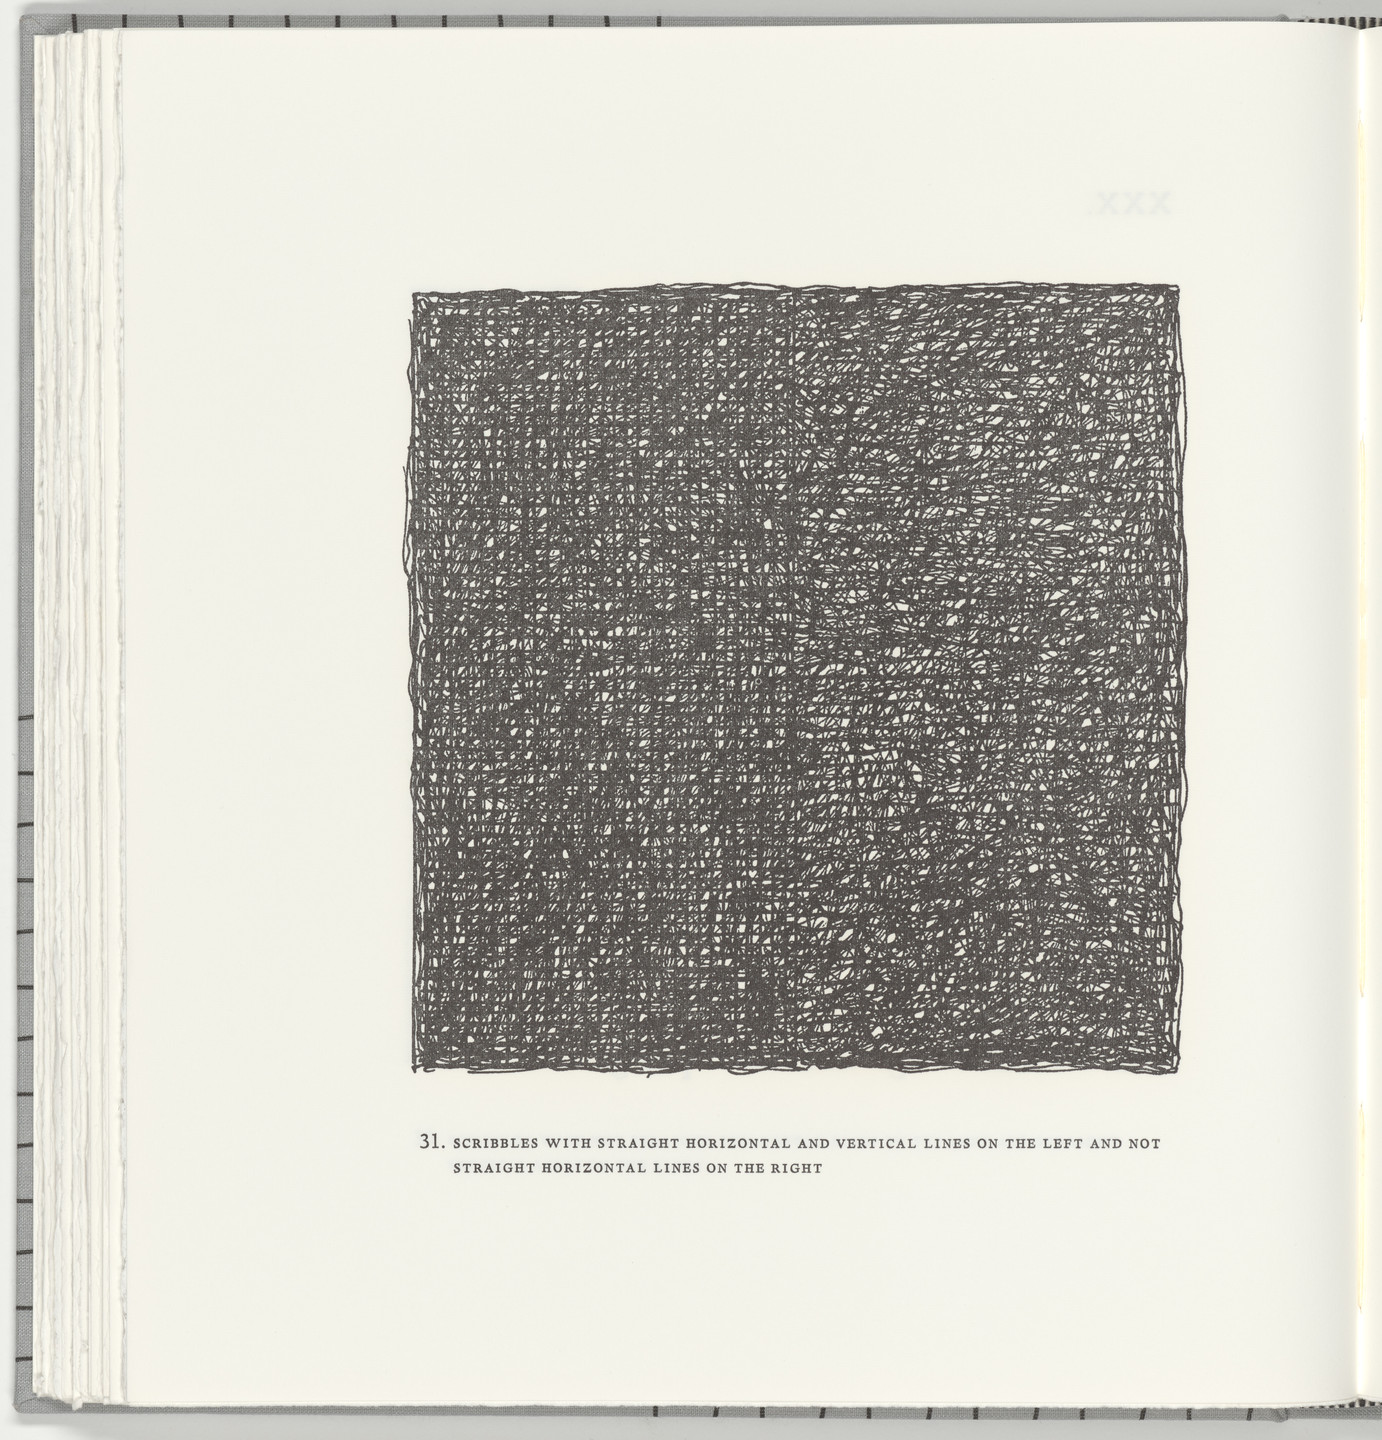 Sol LeWitt. Scribbles with Straight Horizontal and Vertical Lines on the Left and Not Straight Horizontal Lines on the Right (plate 31) from Squarings. 2003